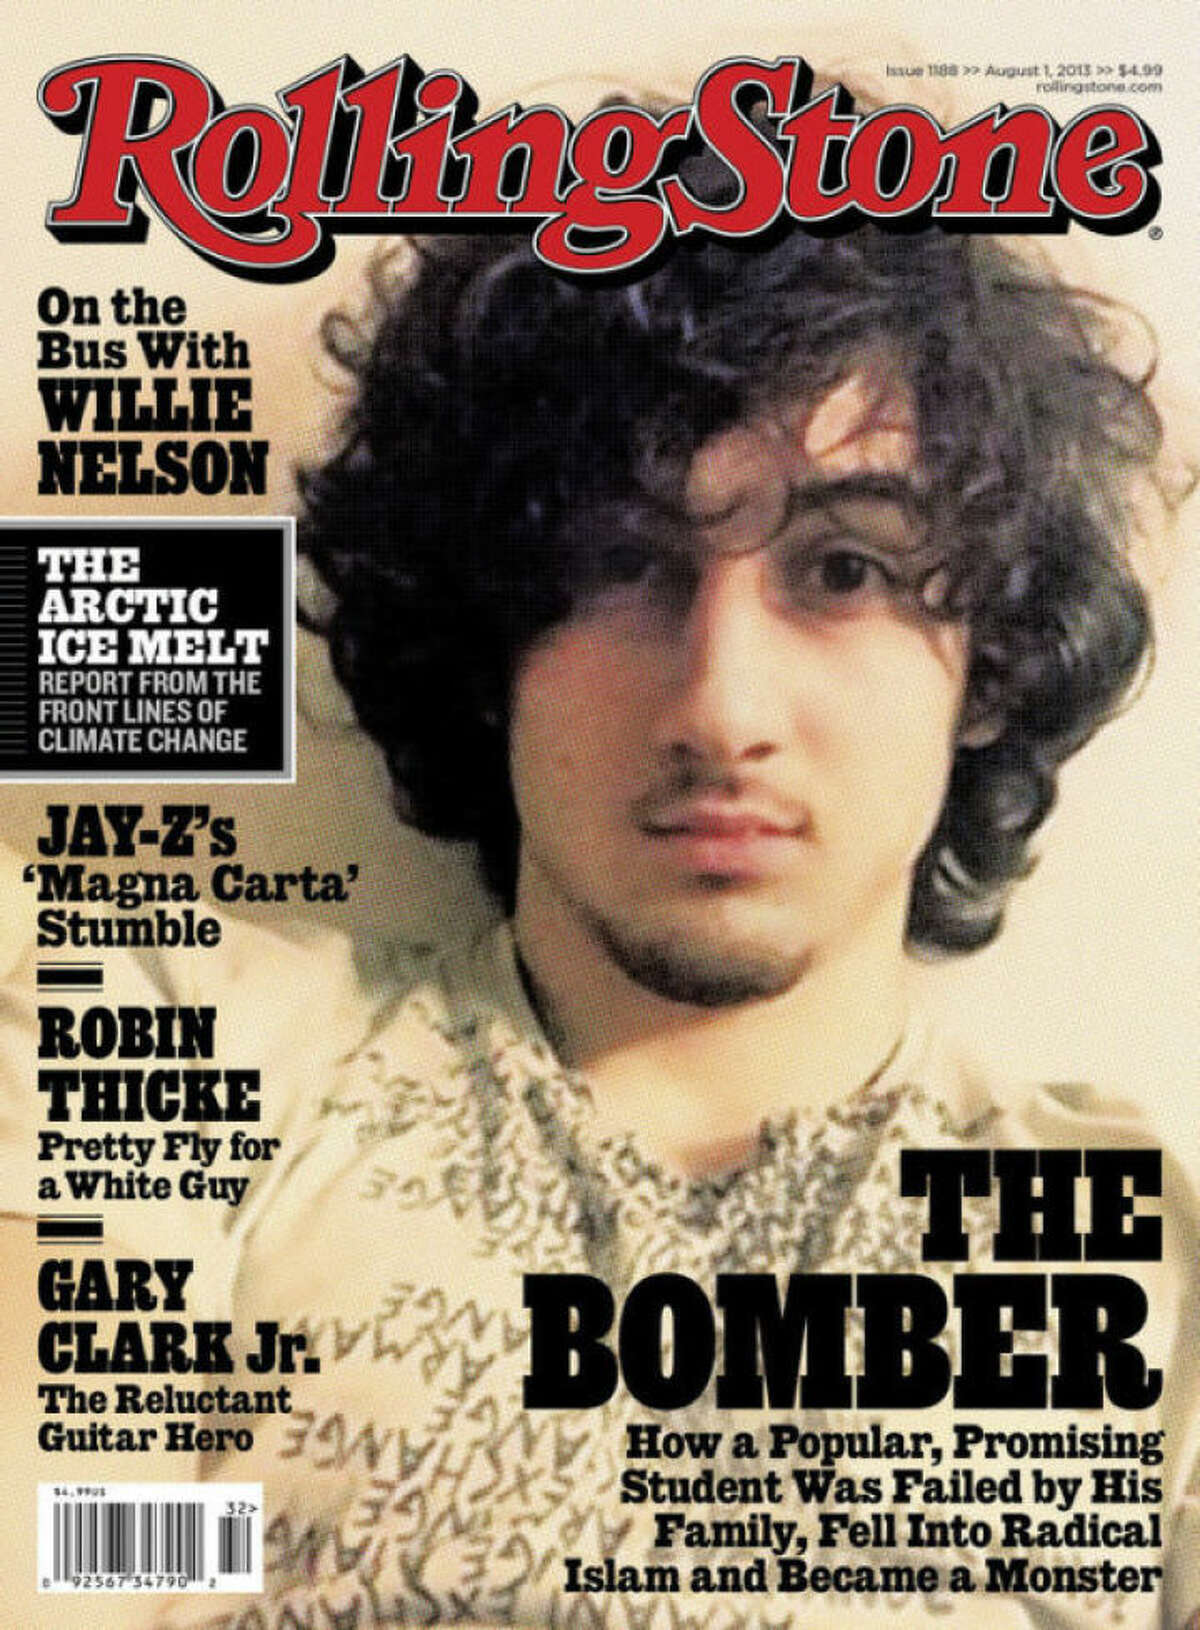 """In this magazine cover image released by Wenner Media, Boston Marathon bombing suspect Dzhokhar Tsarnaev appears on the cover of the Aug. 1, 2013 issue of """"Rolling Stone."""" (AP Photo/Wenner Media)"""